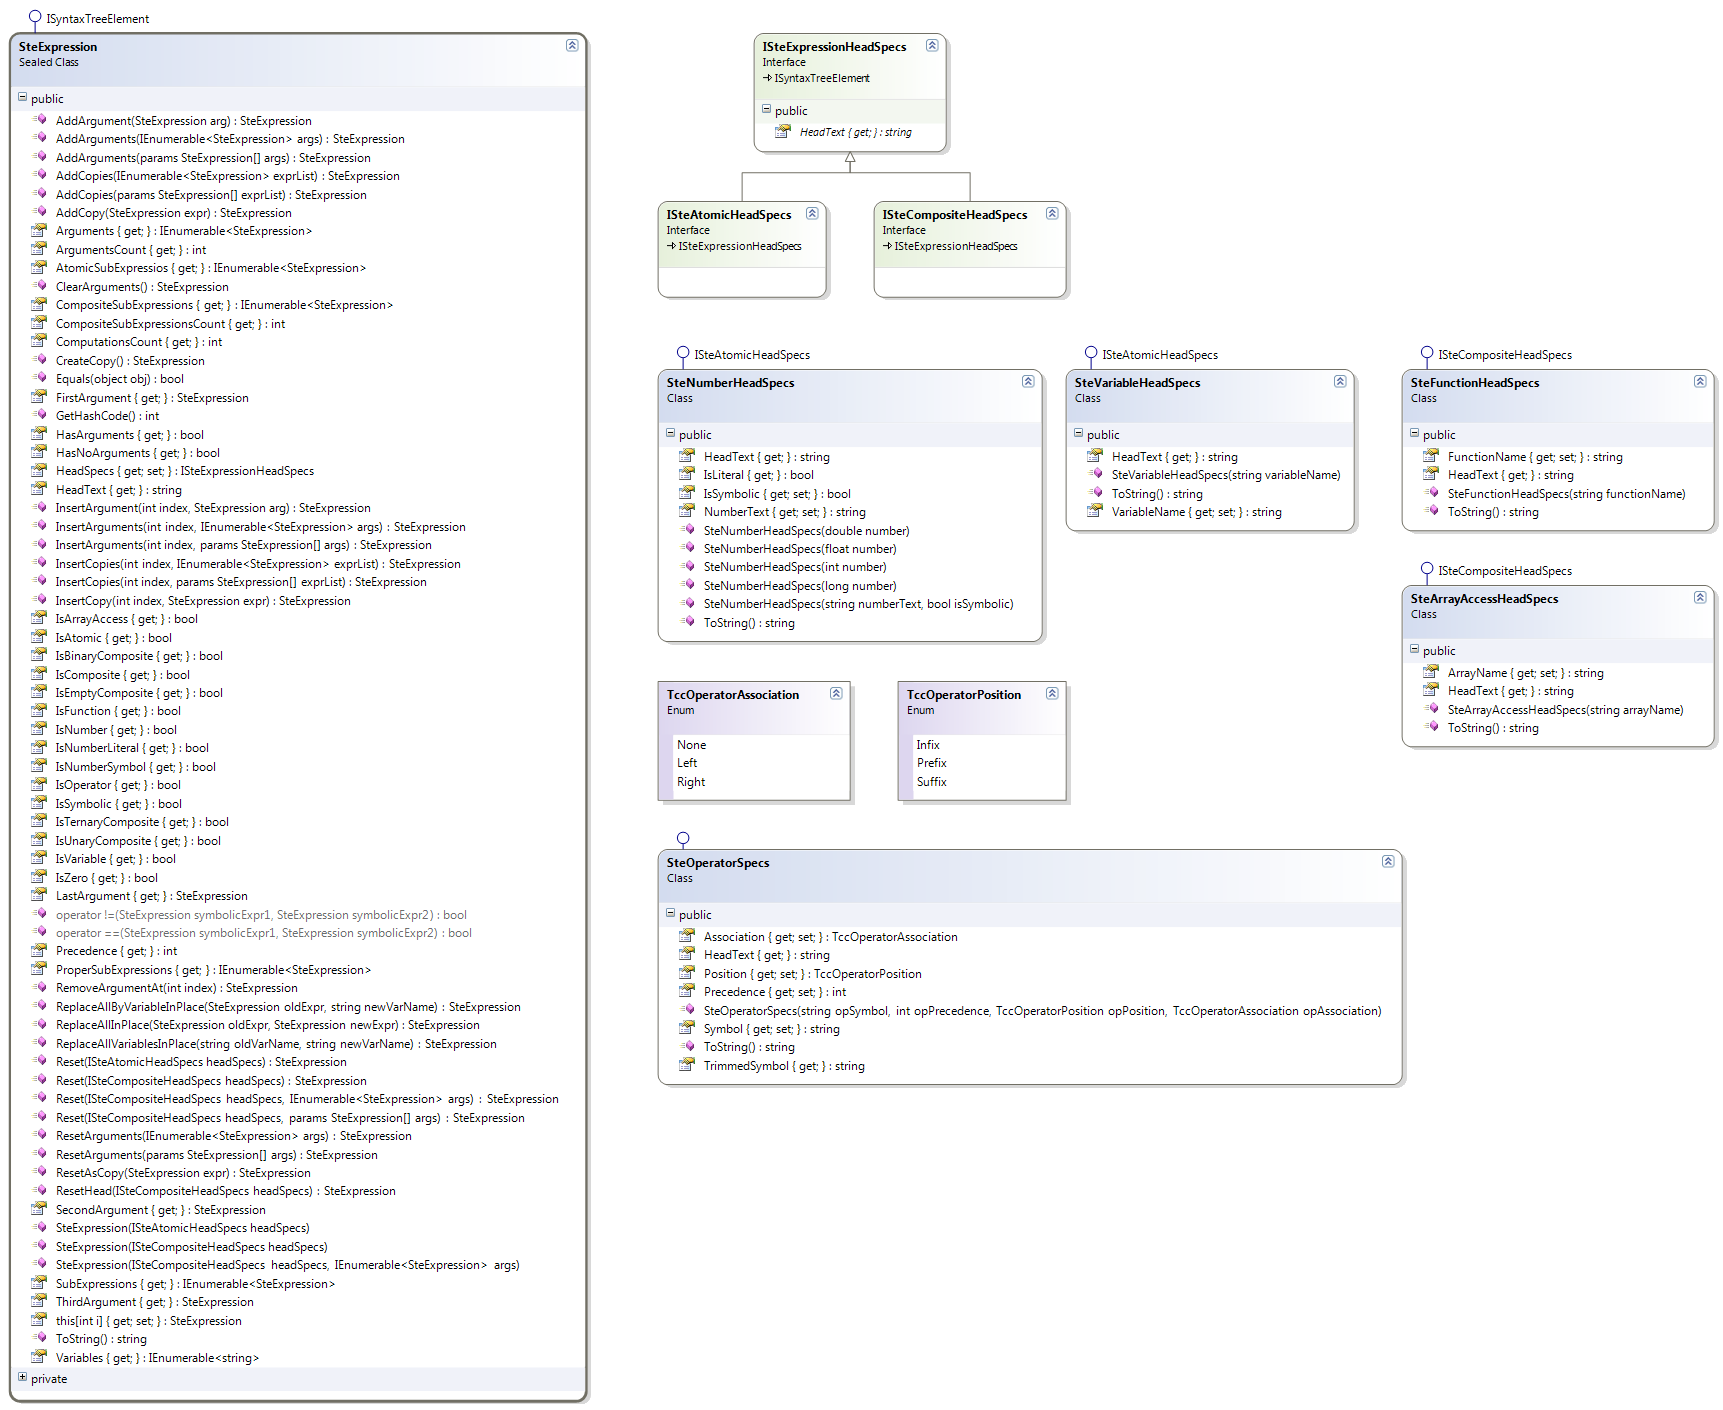 SteExpression Class Diagram